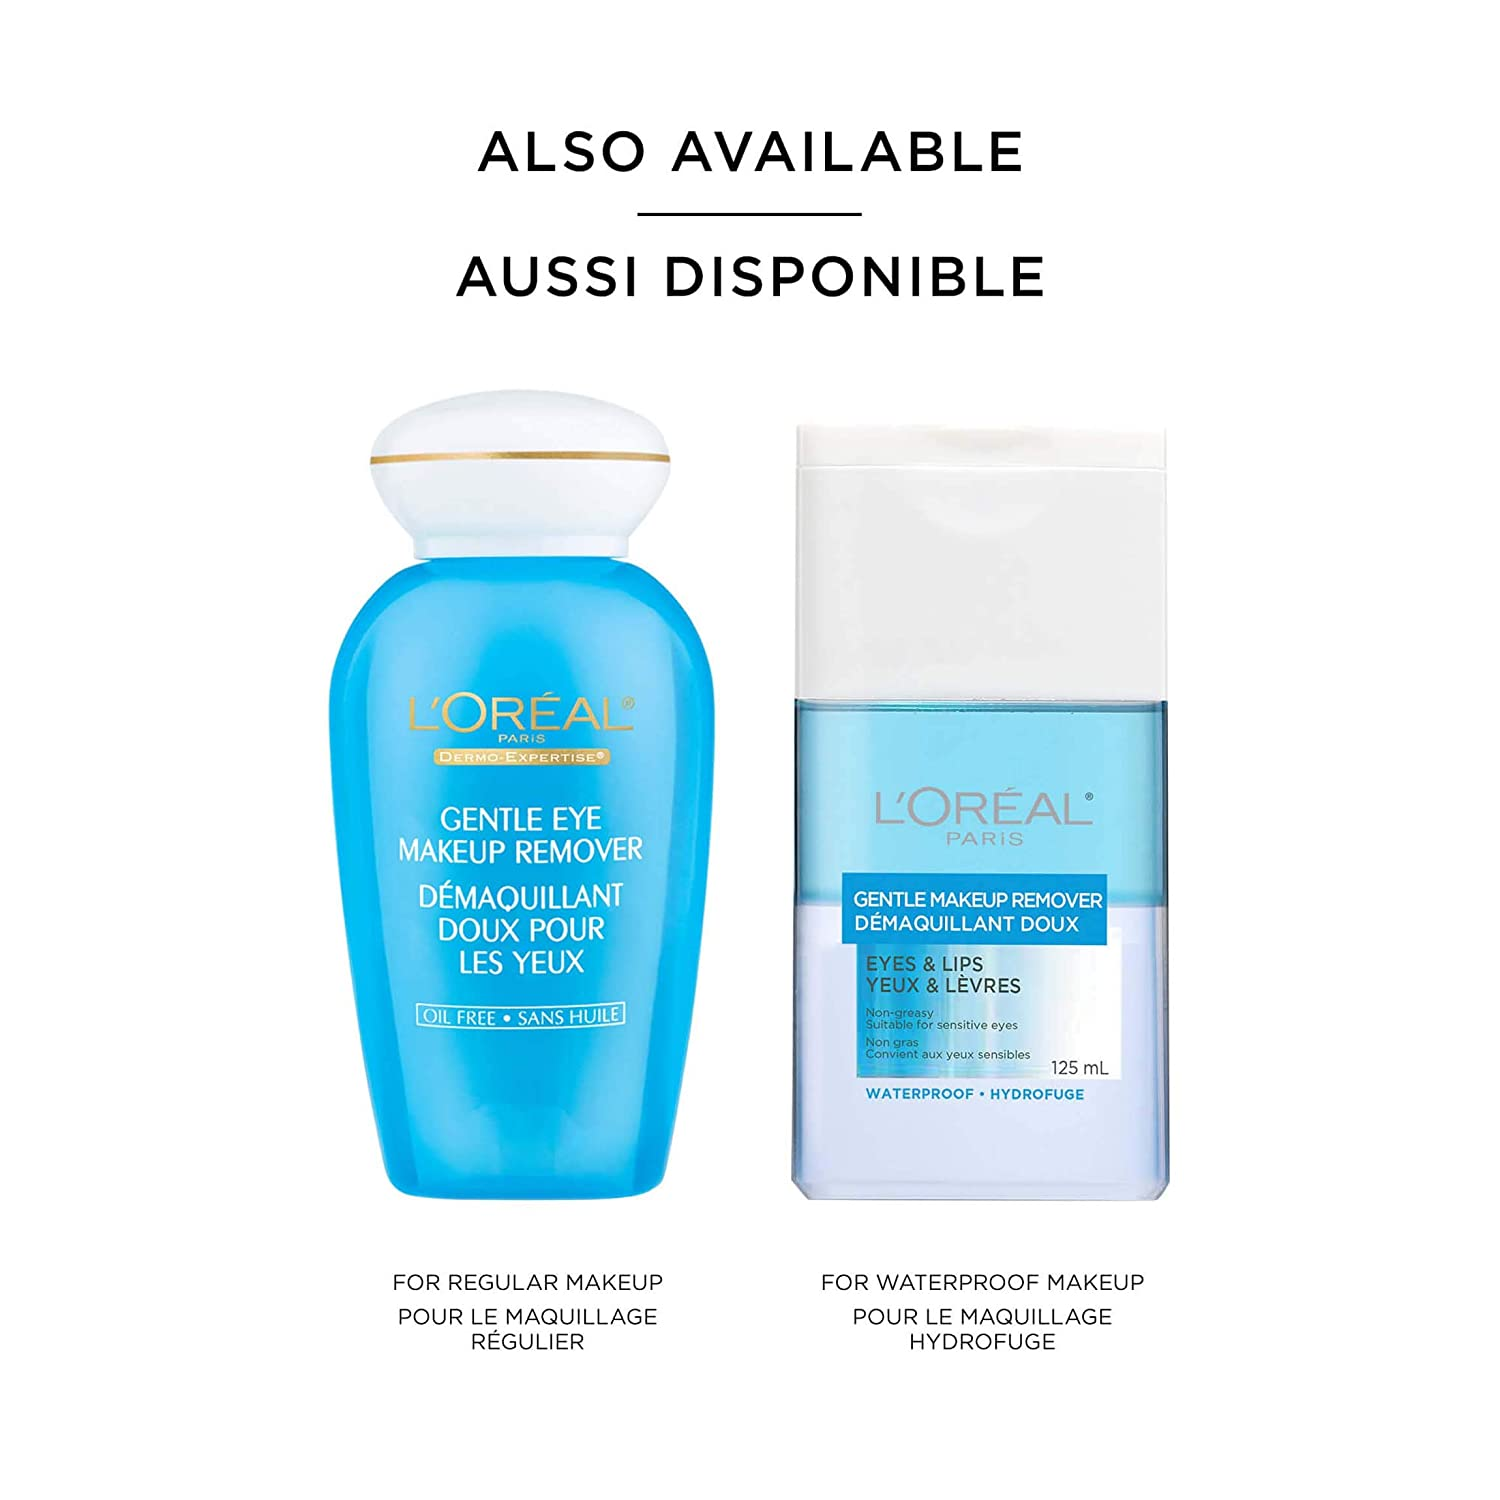 L'Oreal Paris Gentle Eyes & Lips Makeup Remover for Waterproof mascara, Non-greasy, Suitable for sensitive skin, 125 ml: Amazon.ca: Beauty